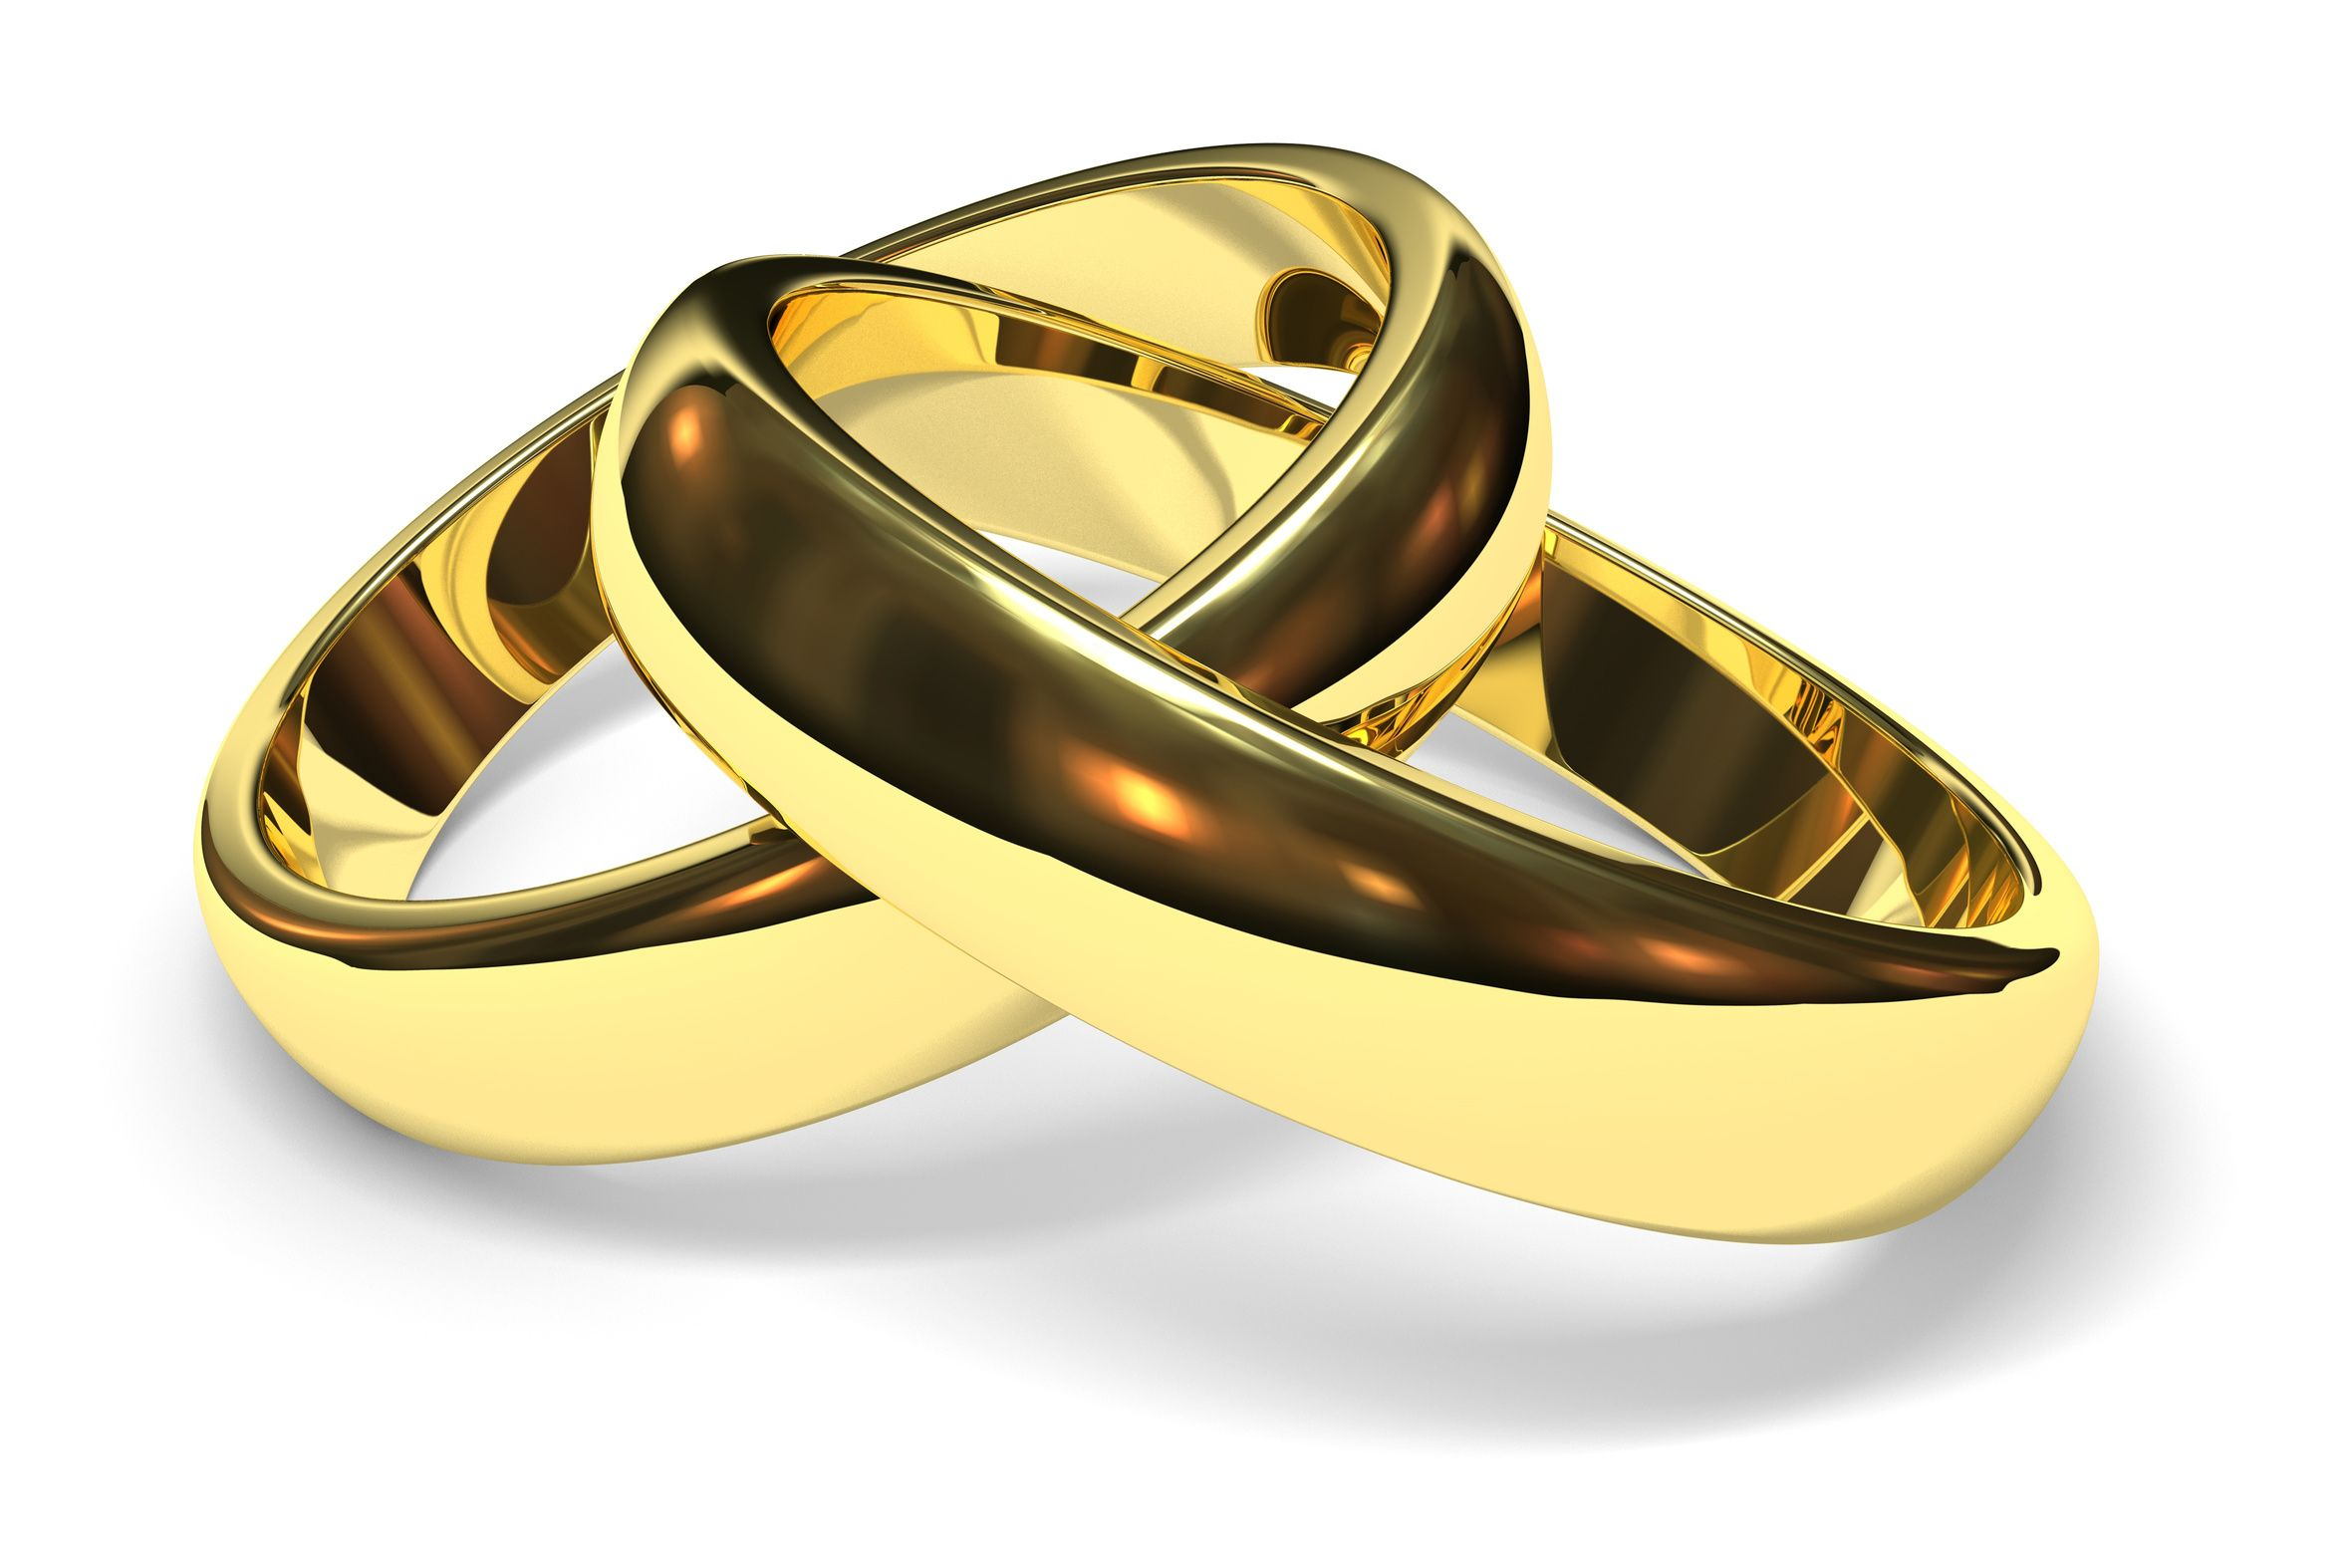 linked gold wedding rings on white background - Wedding Rings Gold